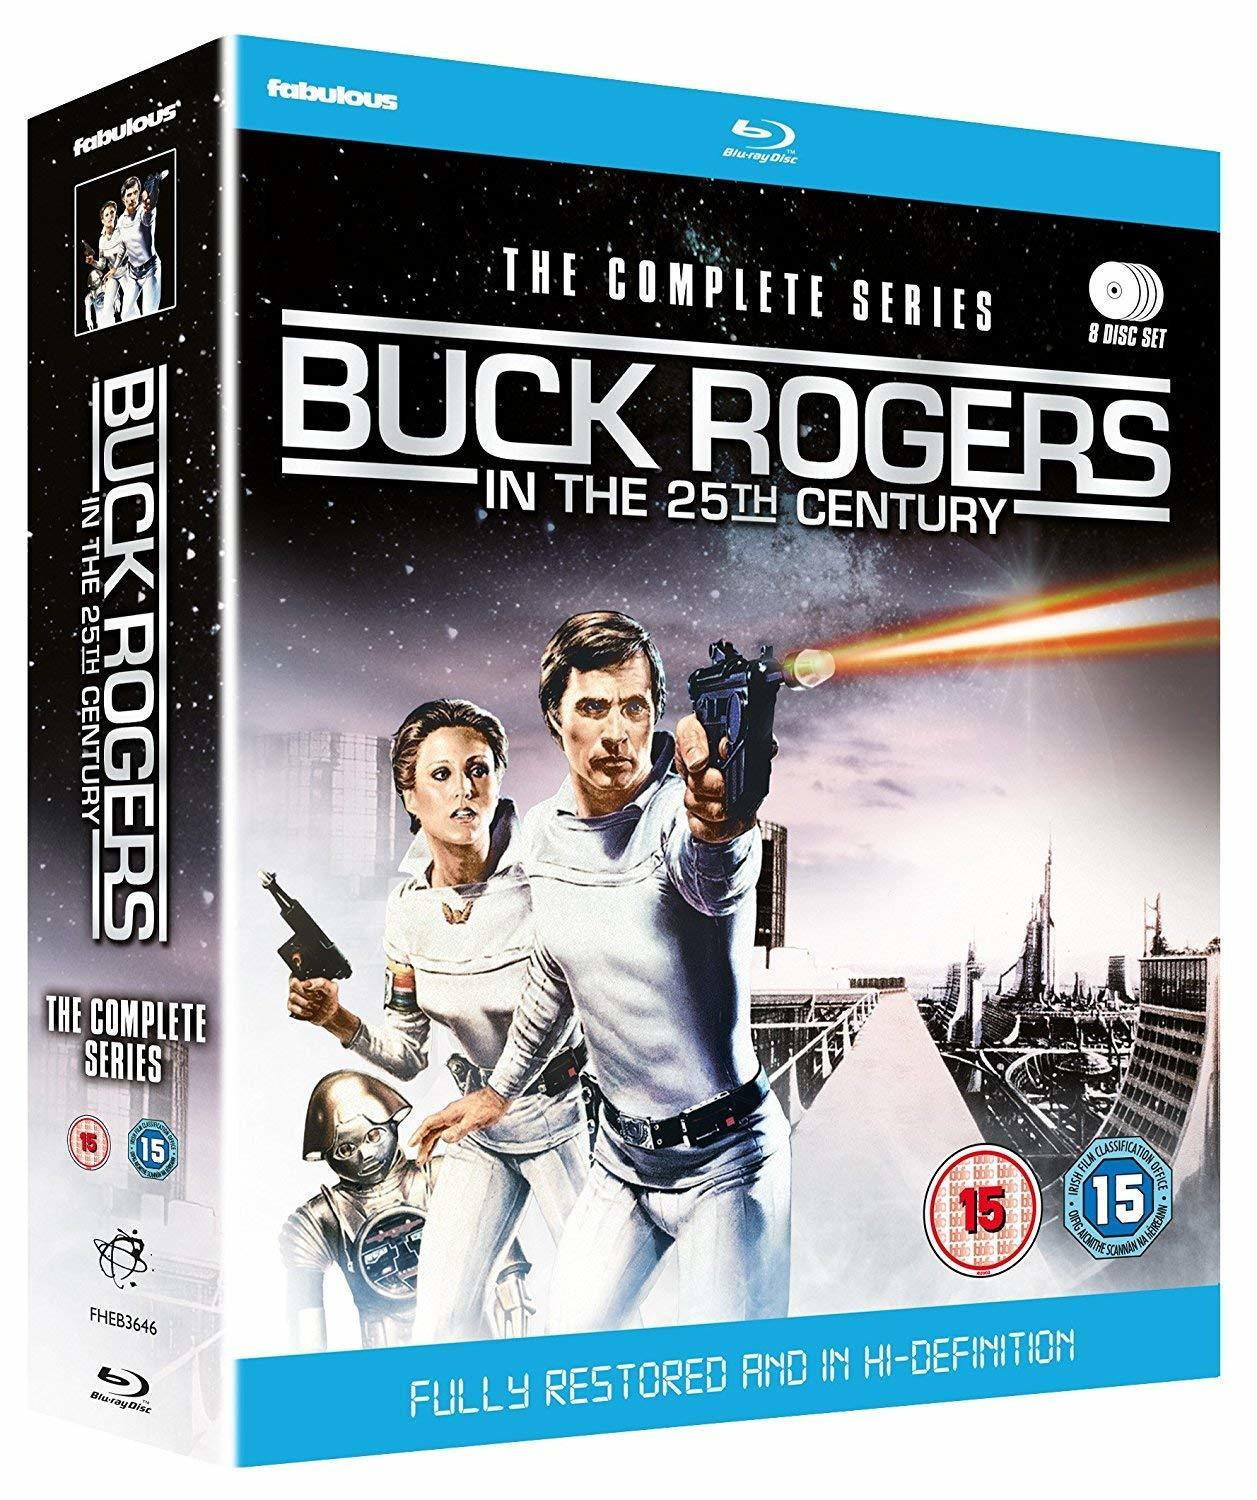 Buck Rogers in the 25th Century Complete Series on blu ray